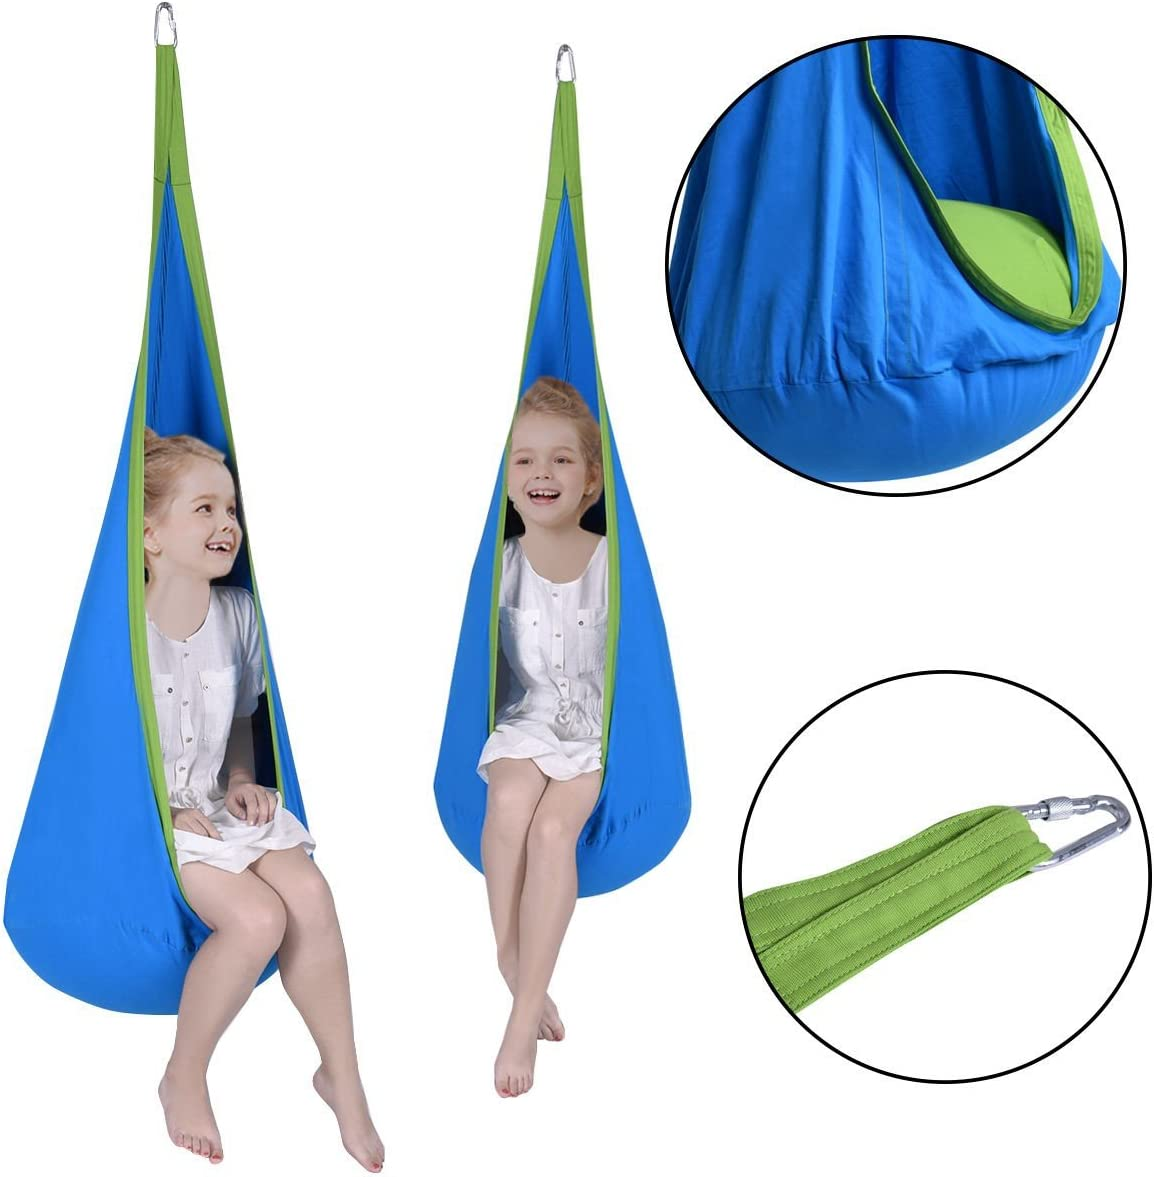 Costway Child Swing Hanging Seat Hammock - Blue durch Spiritone